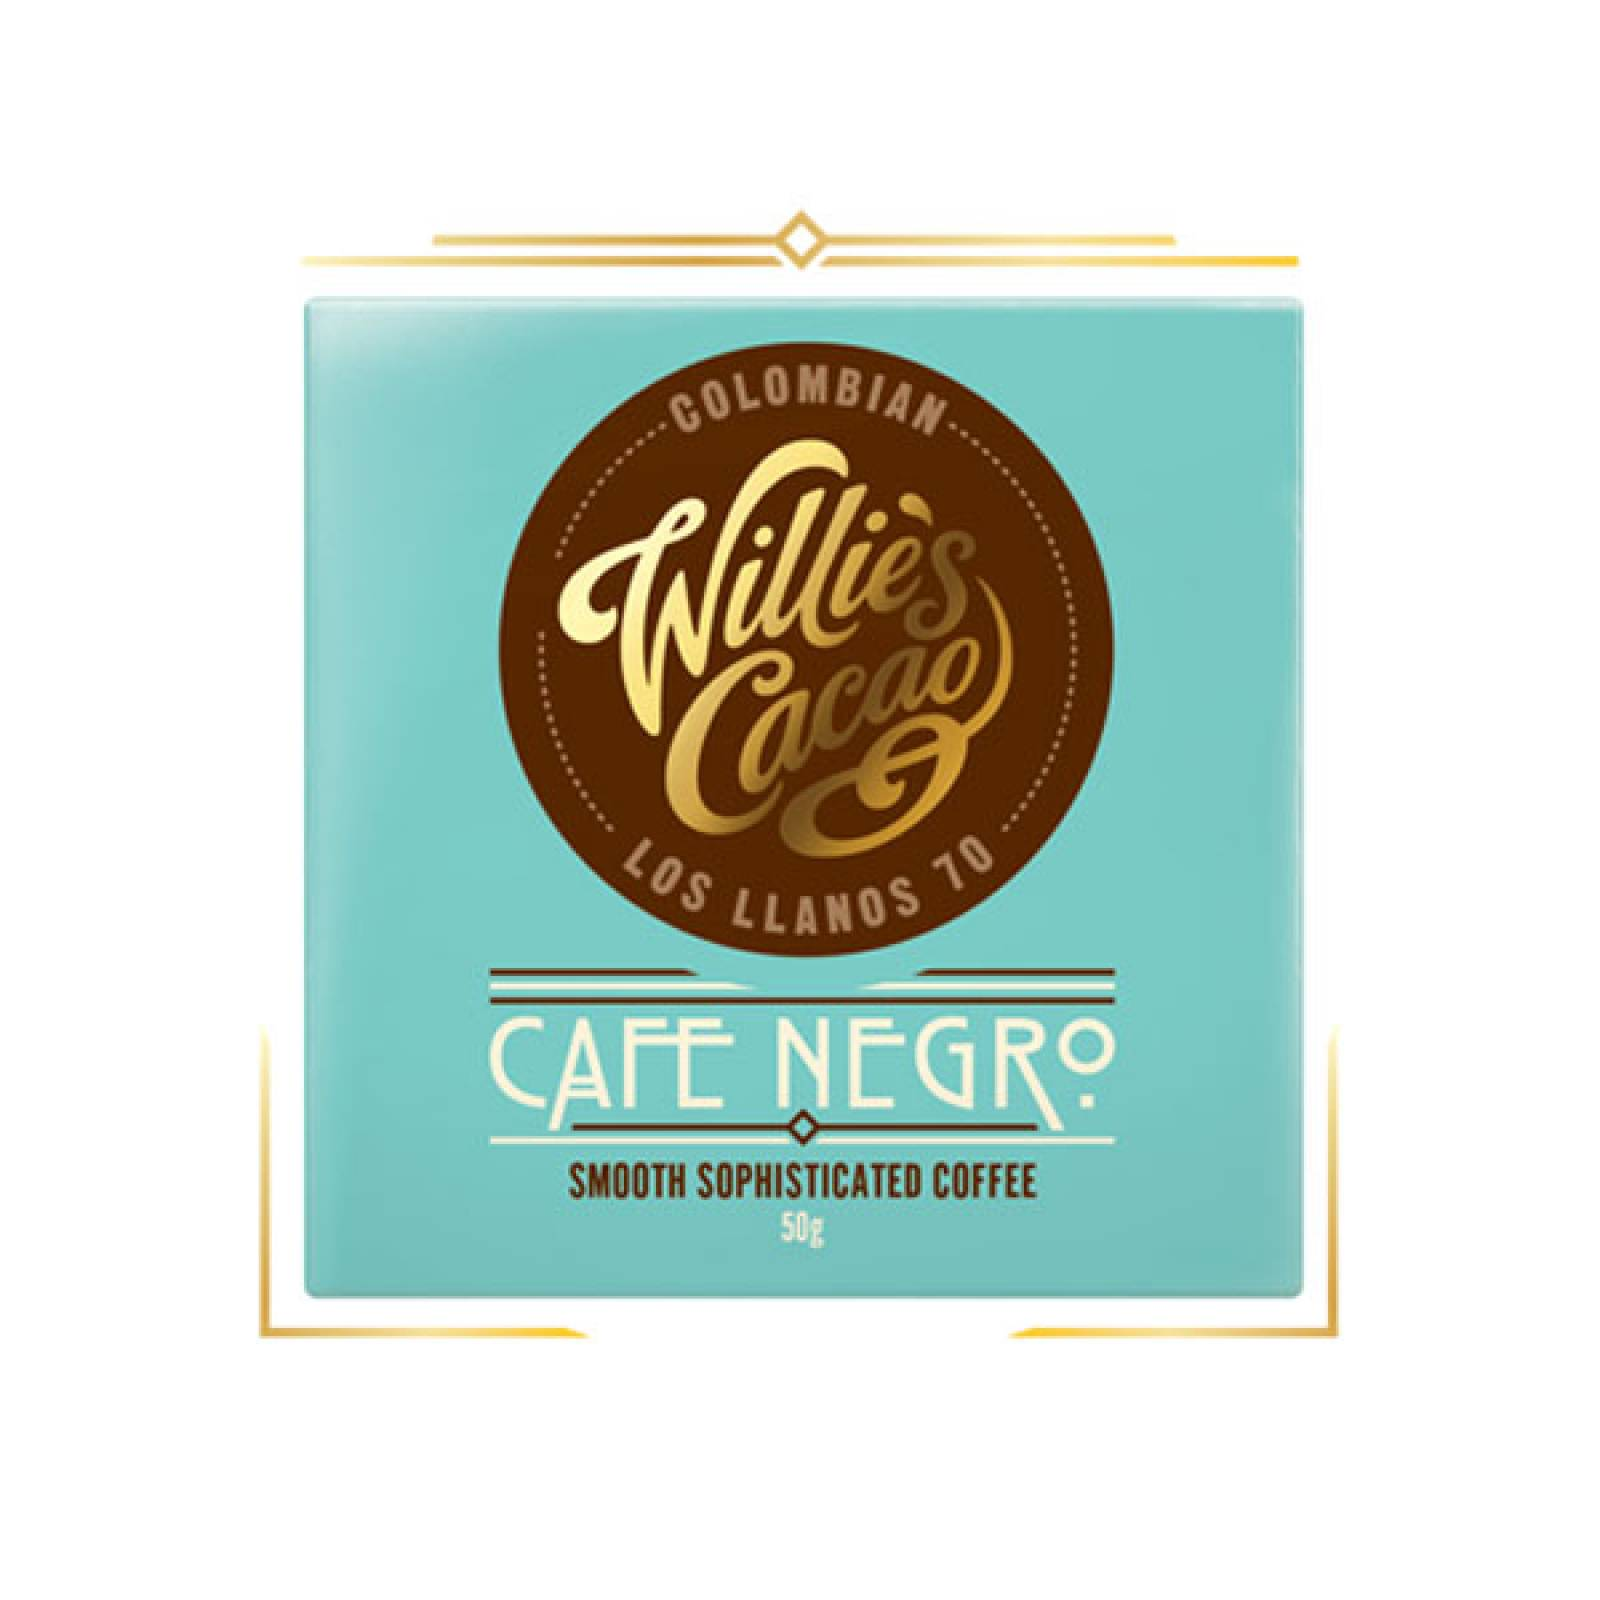 Cafe Negro Dark Chocolate With Coffee 50g Willie's Cacao